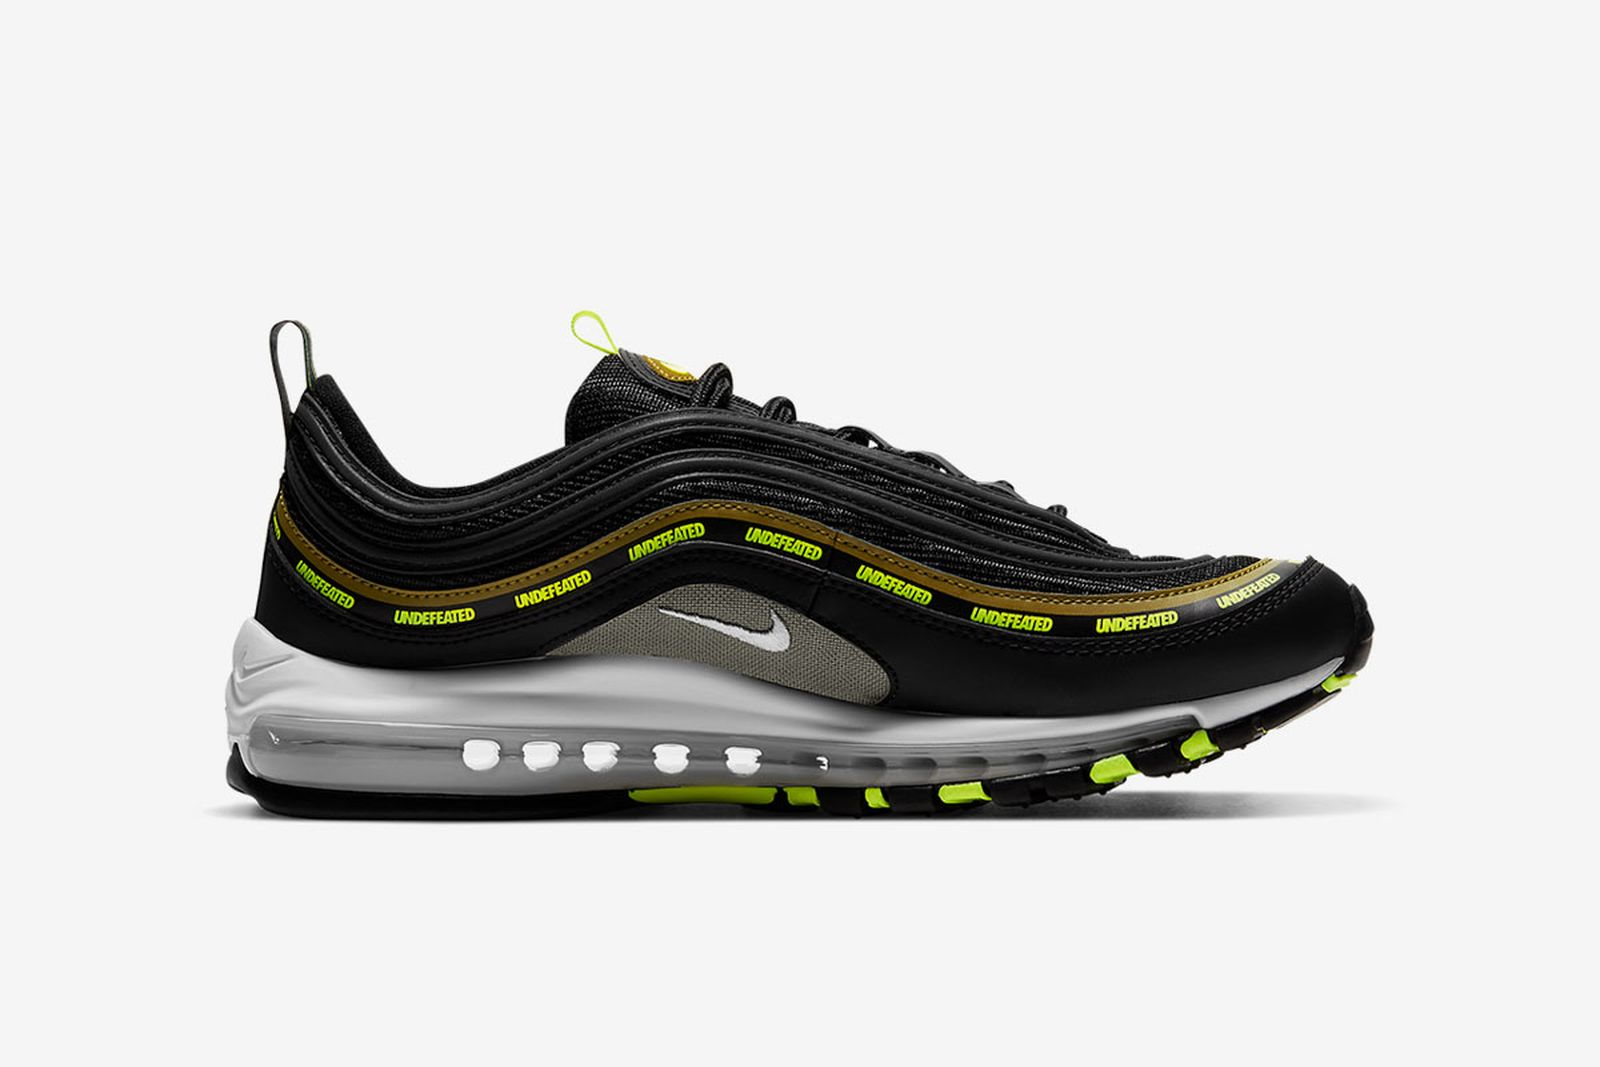 undefeated-nike-air-max-97-release-date-price-07